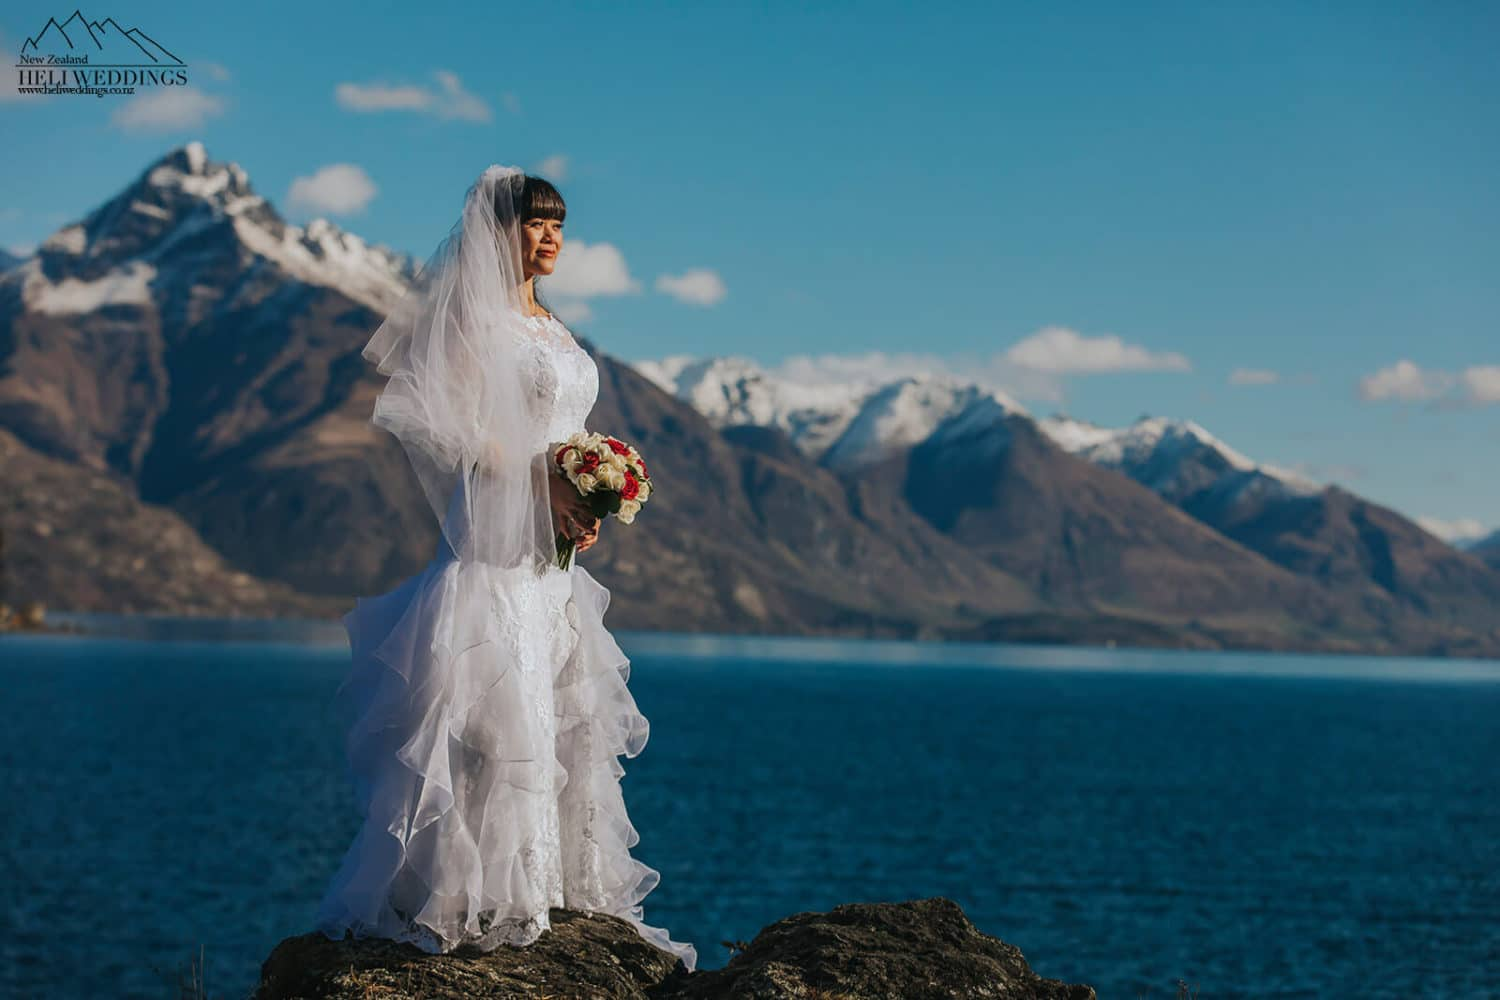 Bride with lake and snowy mountains in Queenstown